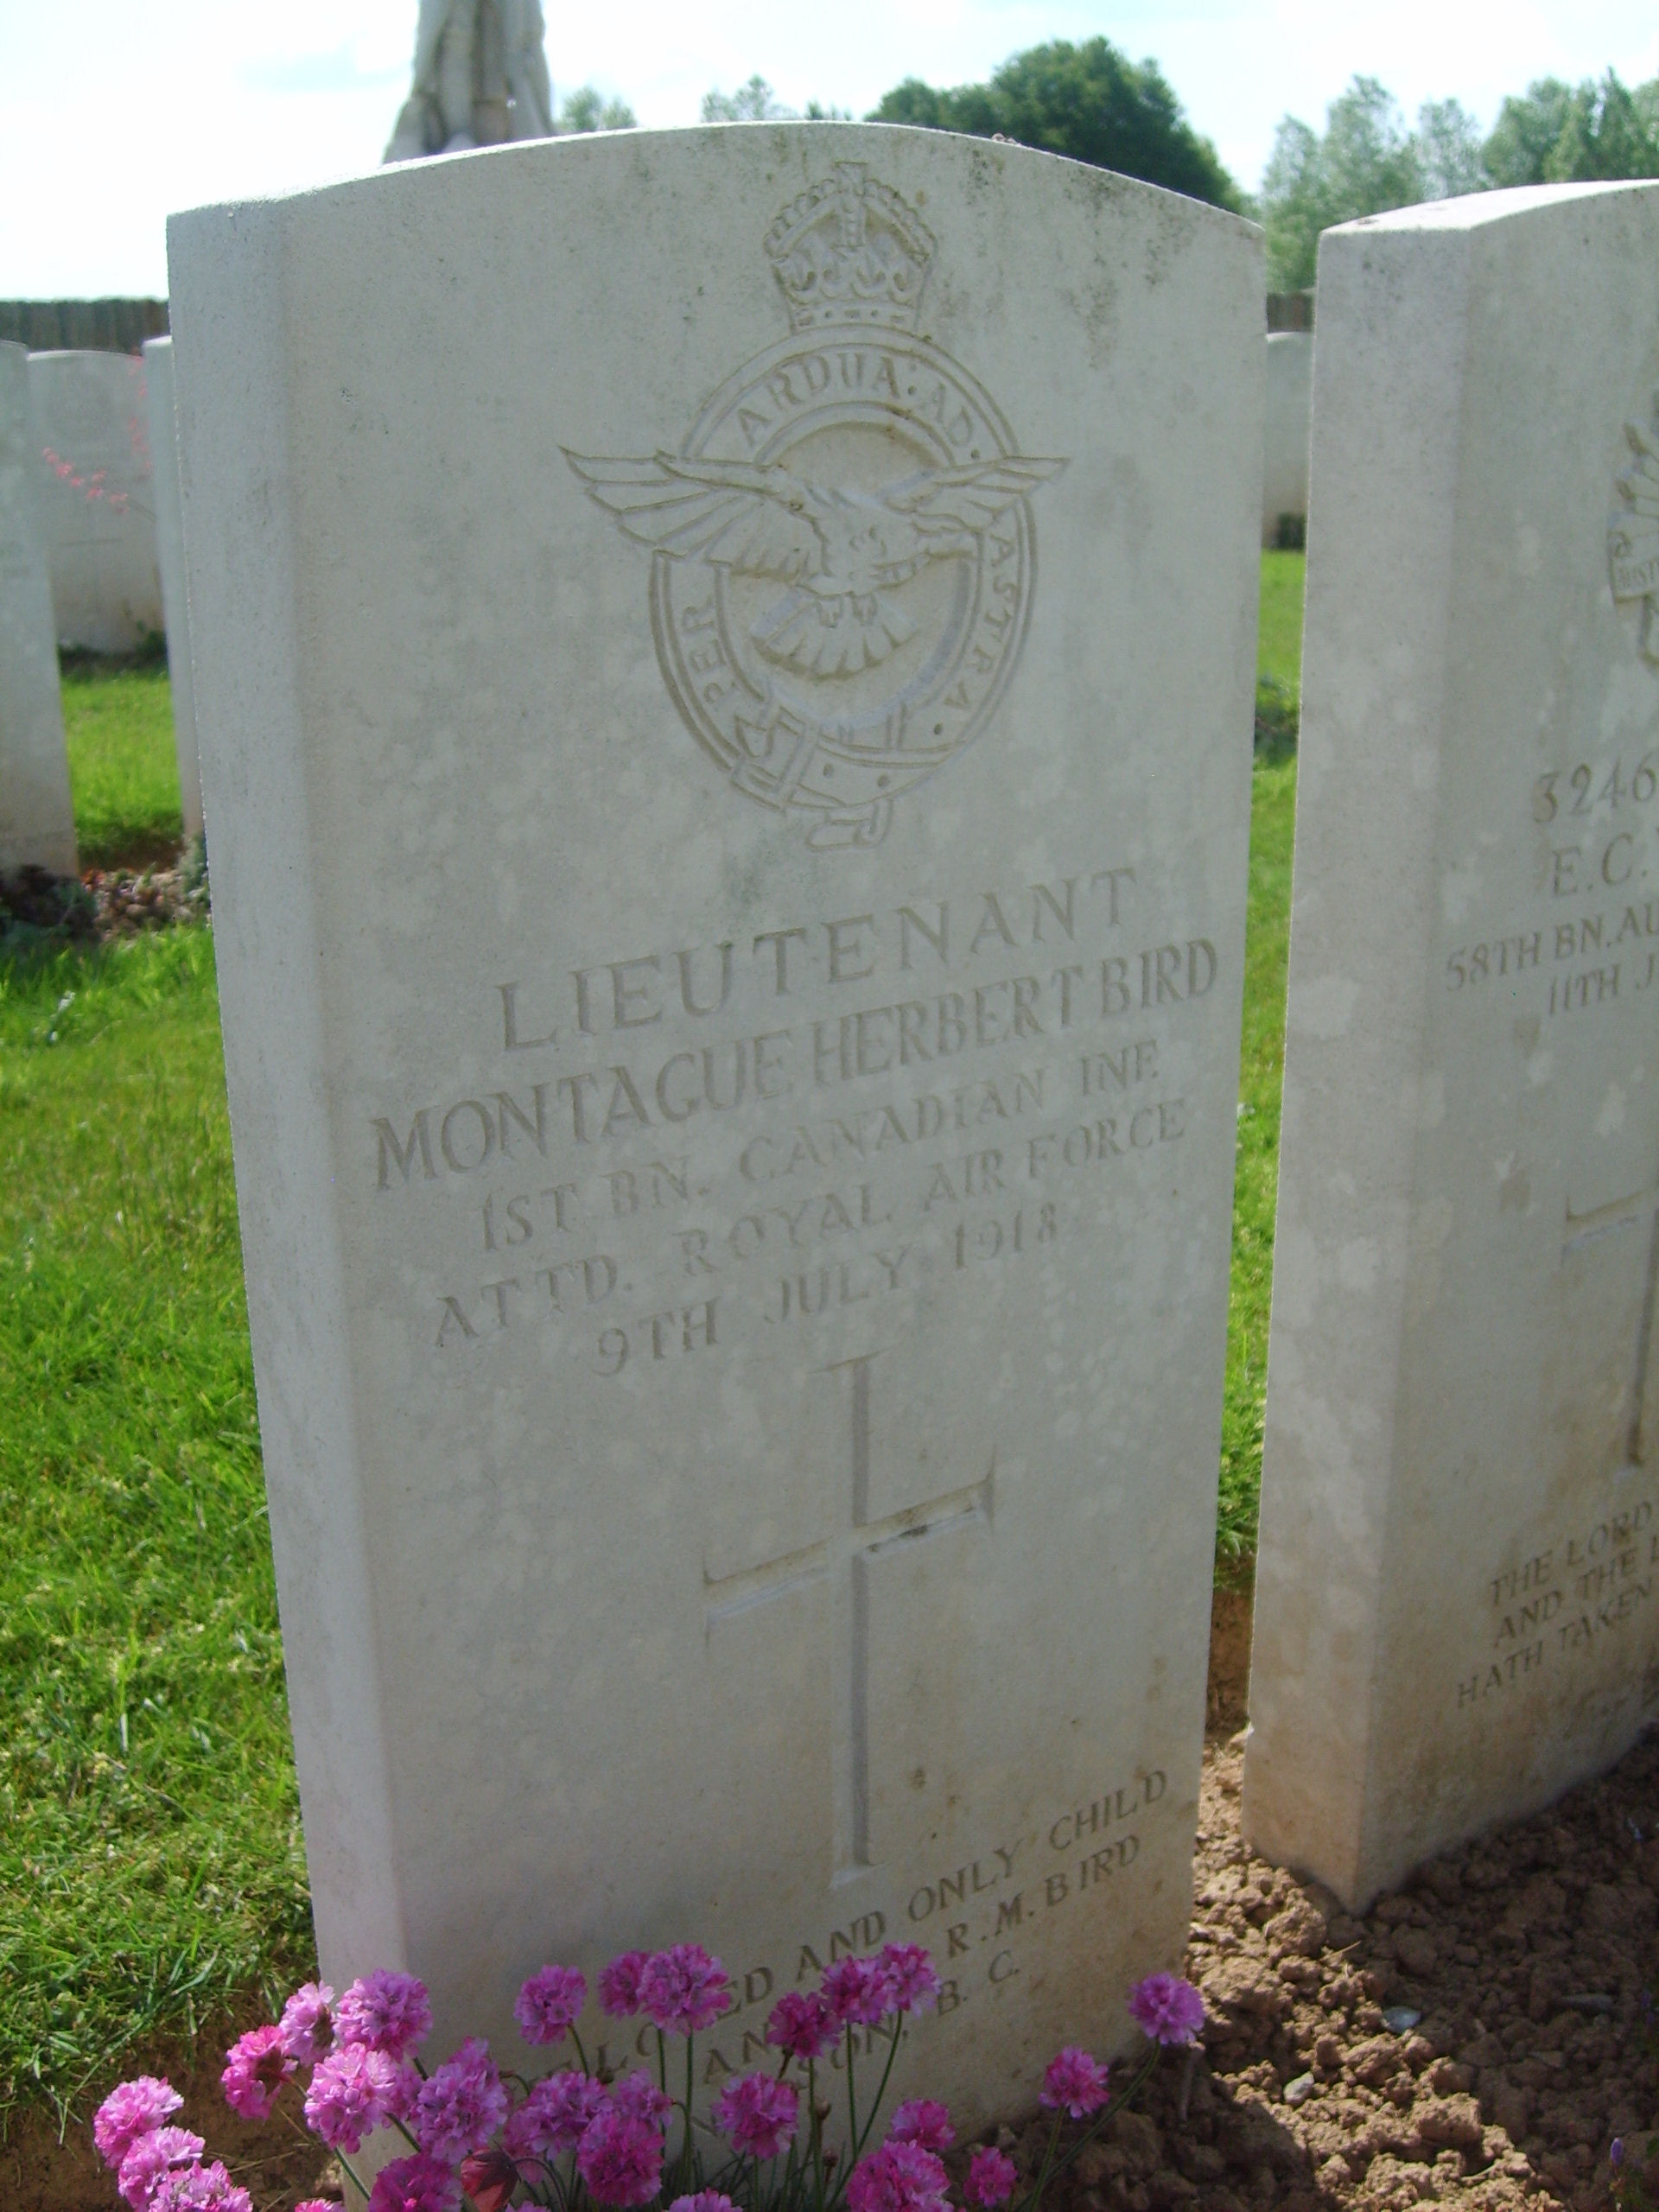 Grave Marker– Photo of the grave. MONTAGU HERBERT BIRD buried in the British cemetery of Vignacourt